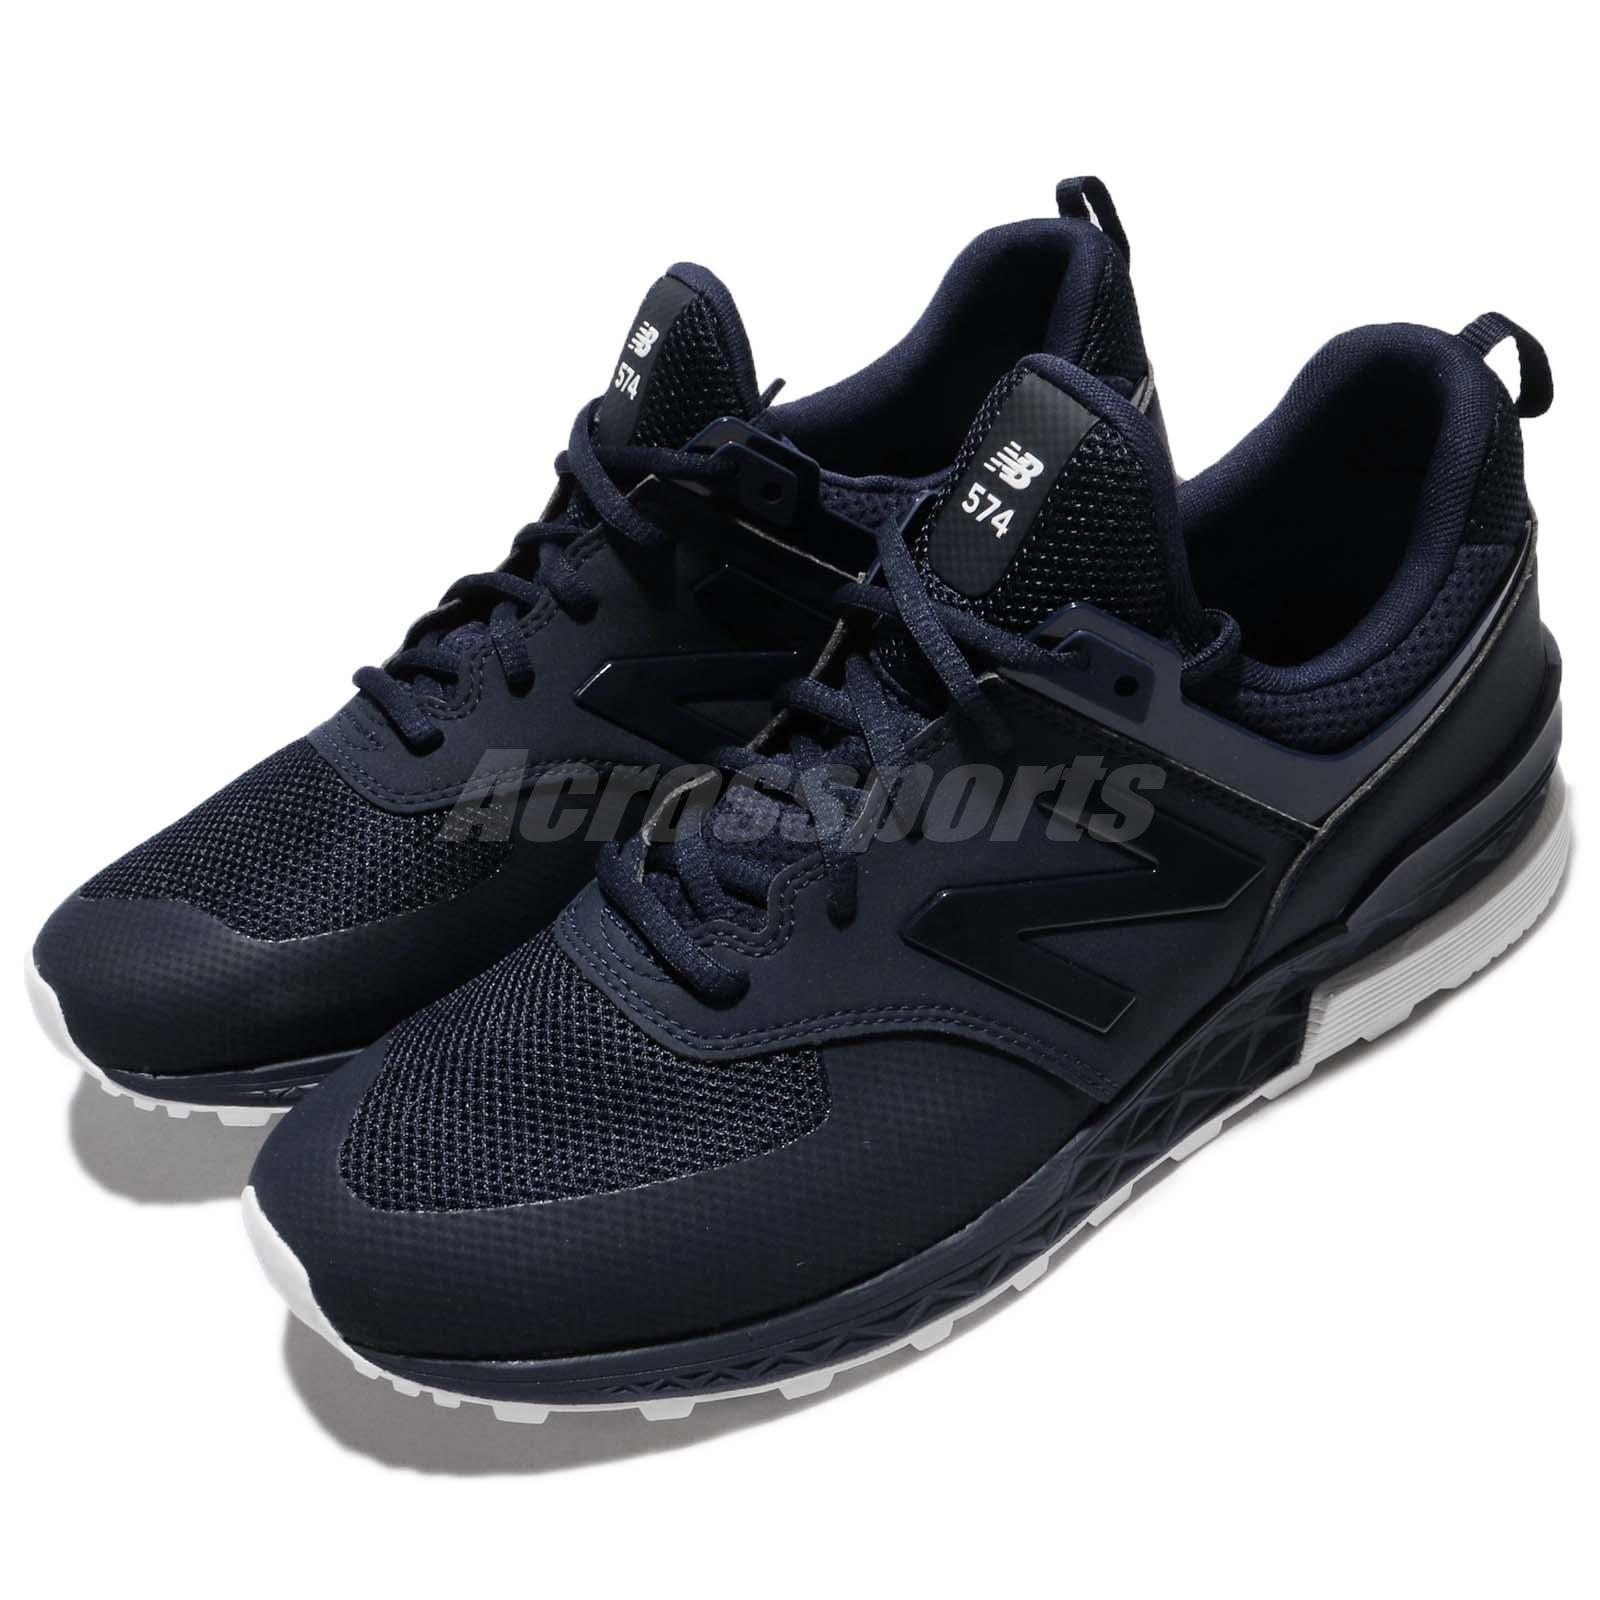 new style 5240b d5f21 Details about New Balance MS574SNV D 574 Navy White Blue Men Running Shoes  Sneakers MS574SNVD